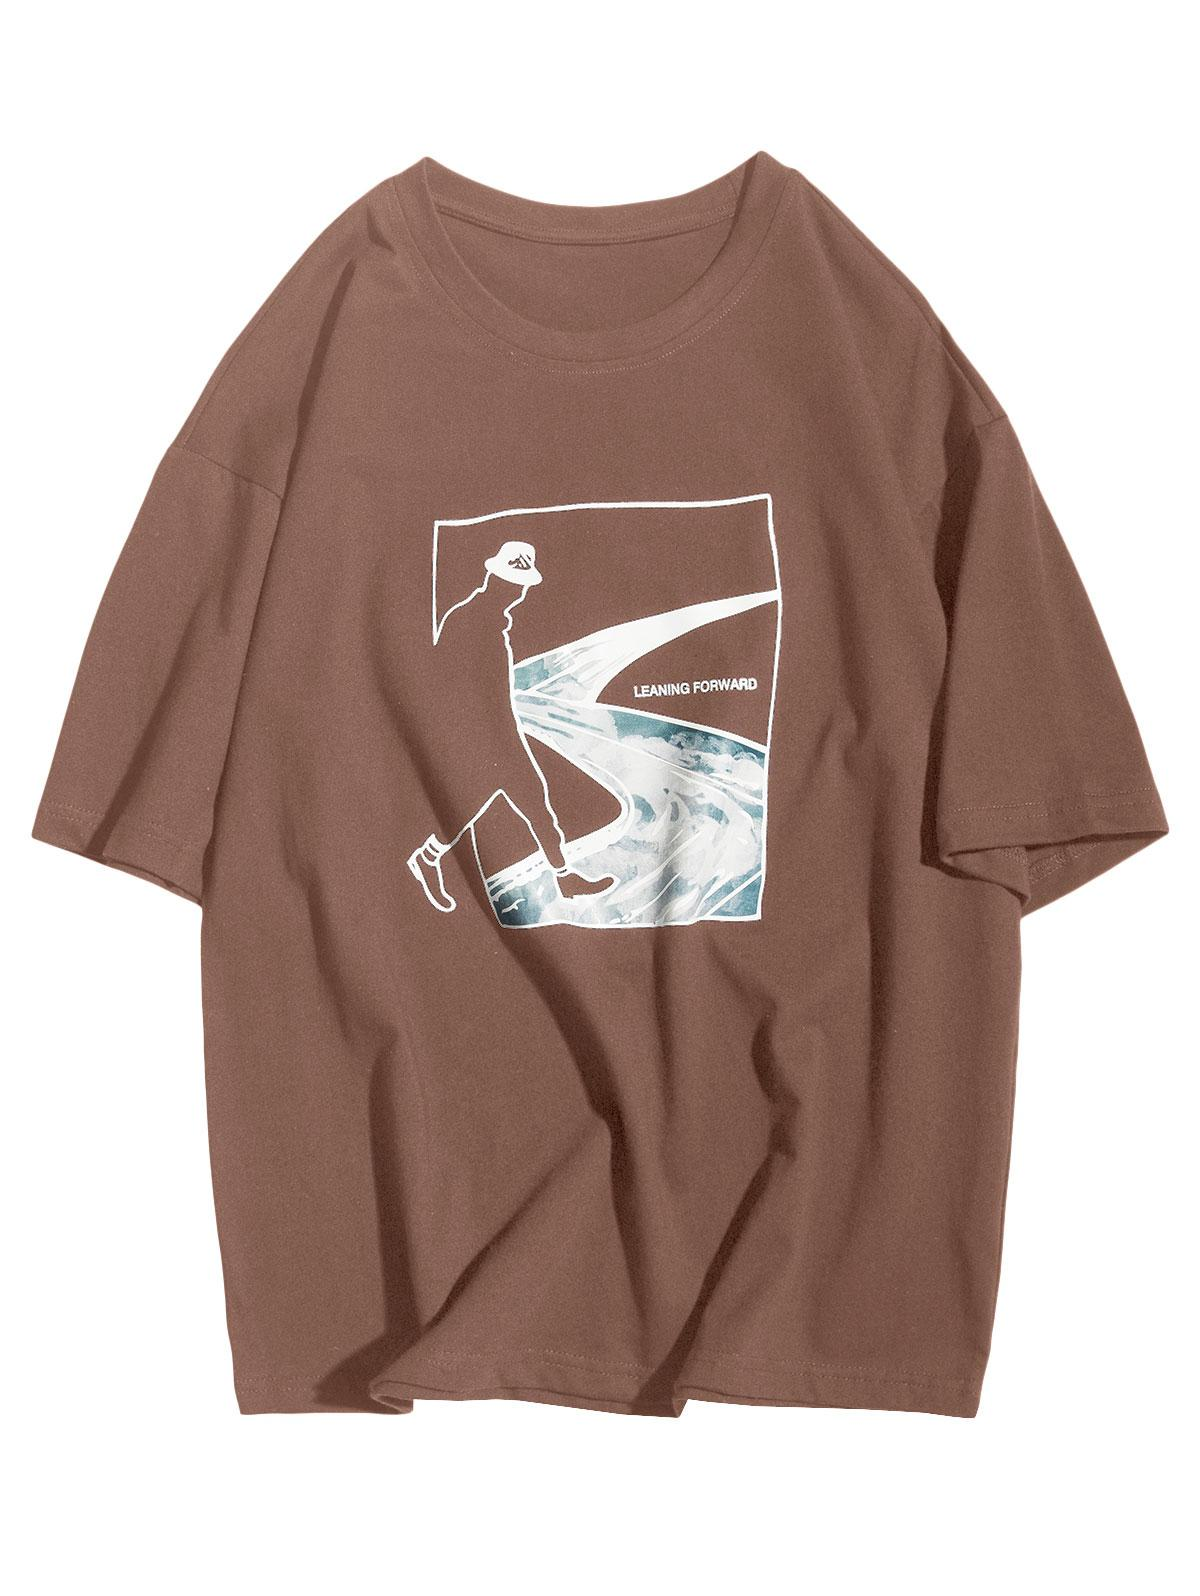 Leaning Forward Abstract Figure Road Graphic Casual T-shirt фото